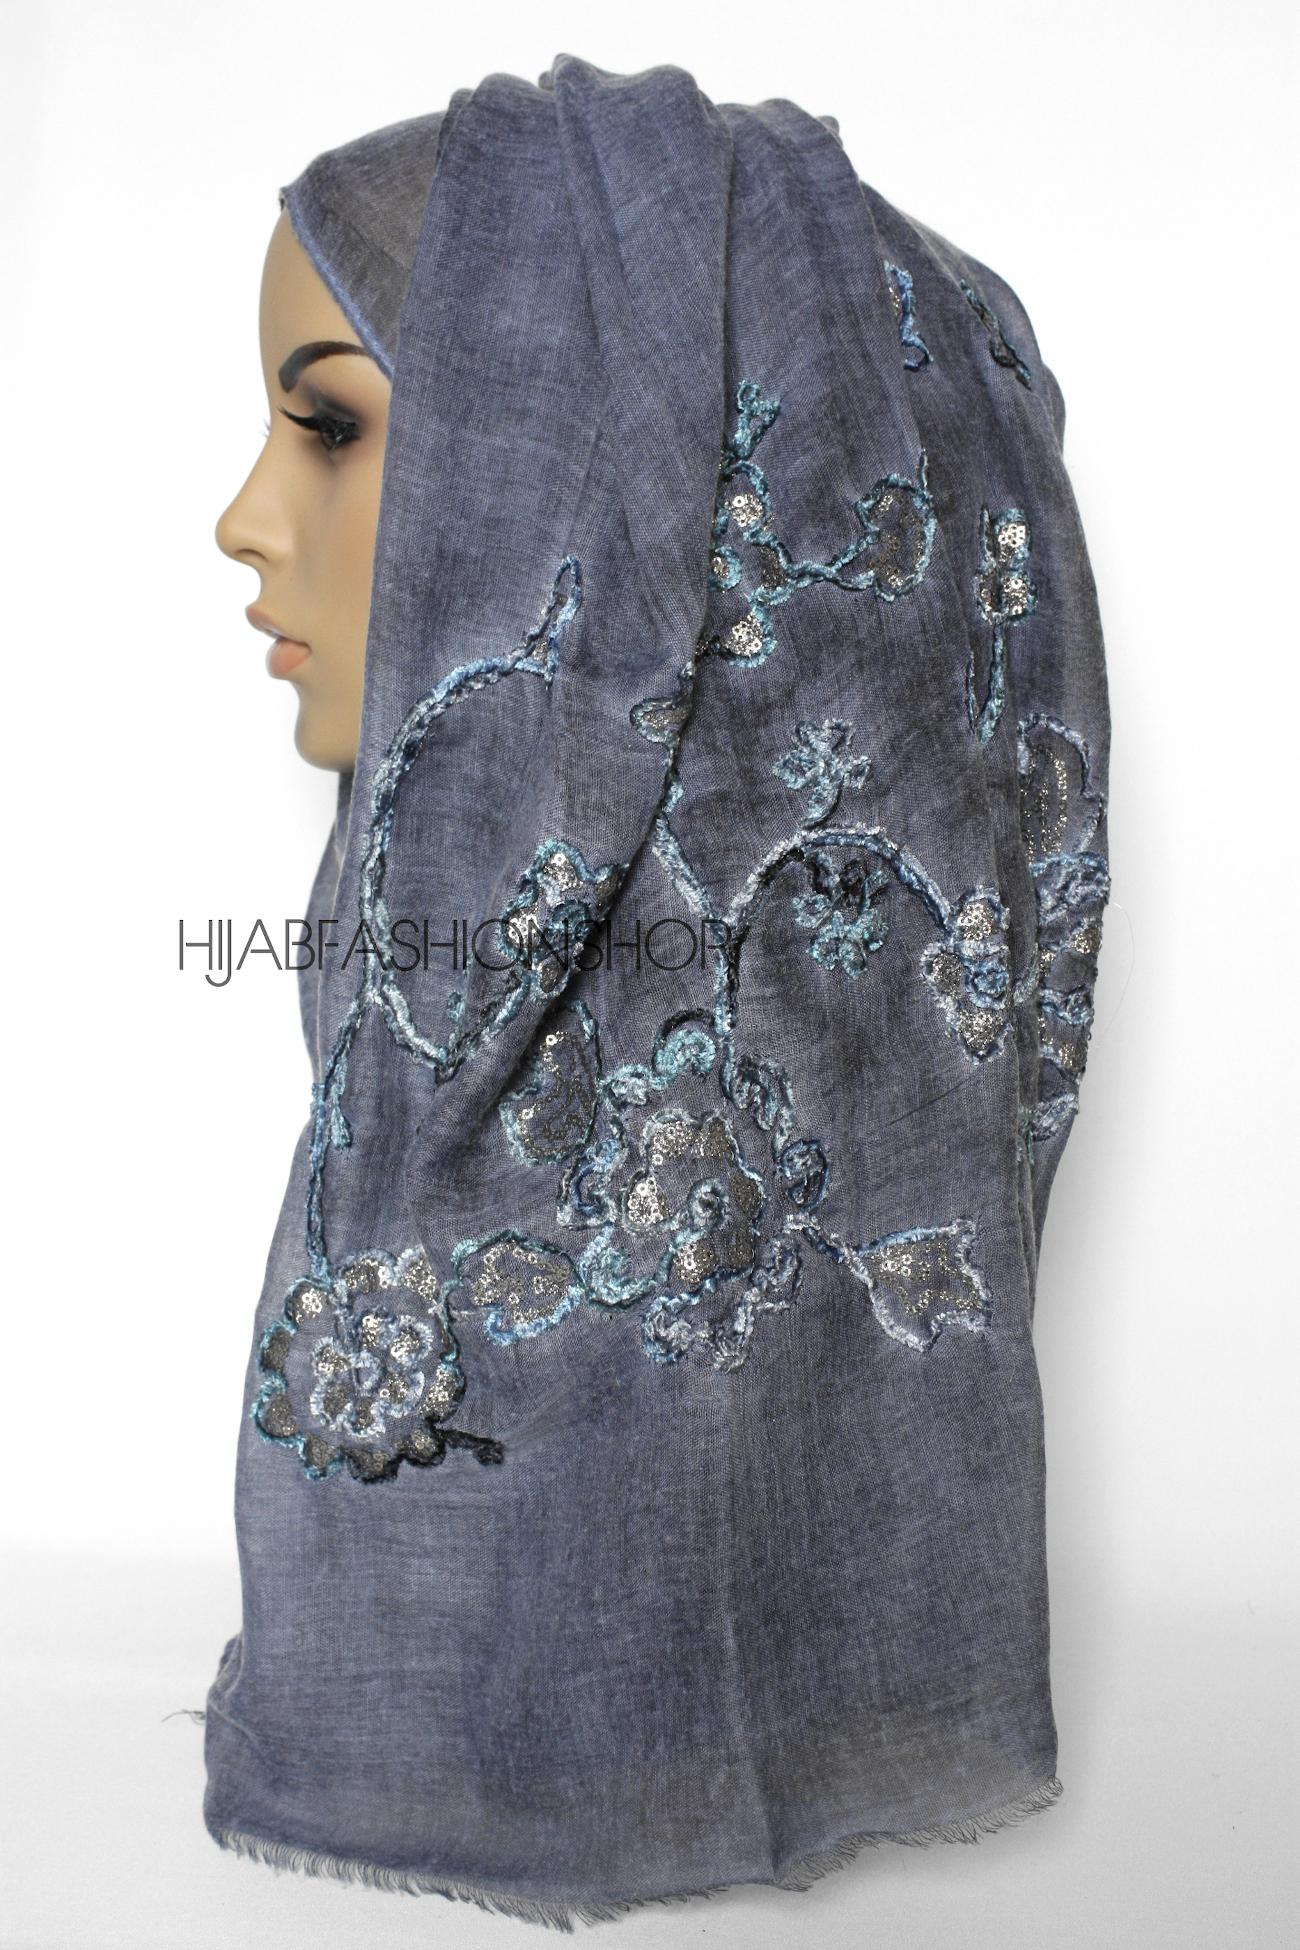 denim linen look hijab with floral velvet embroidery and sequins side view